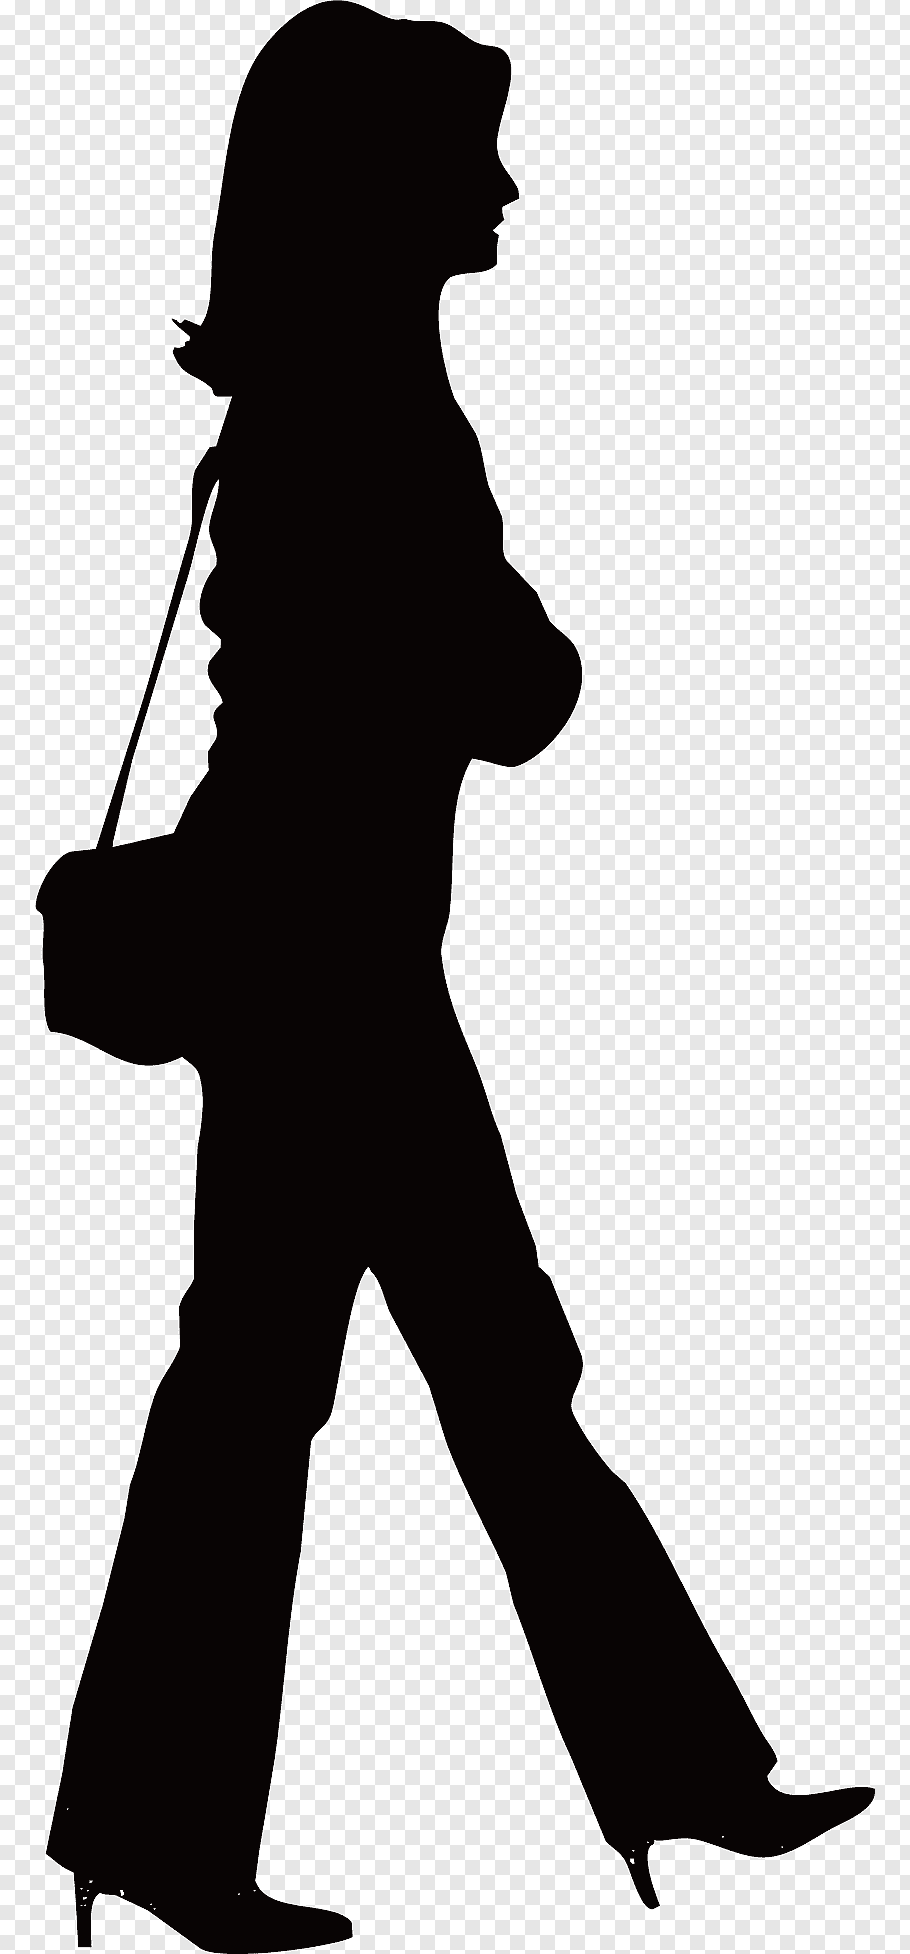 Silhouette of woman carrying sling bag, Silhouette Walking.